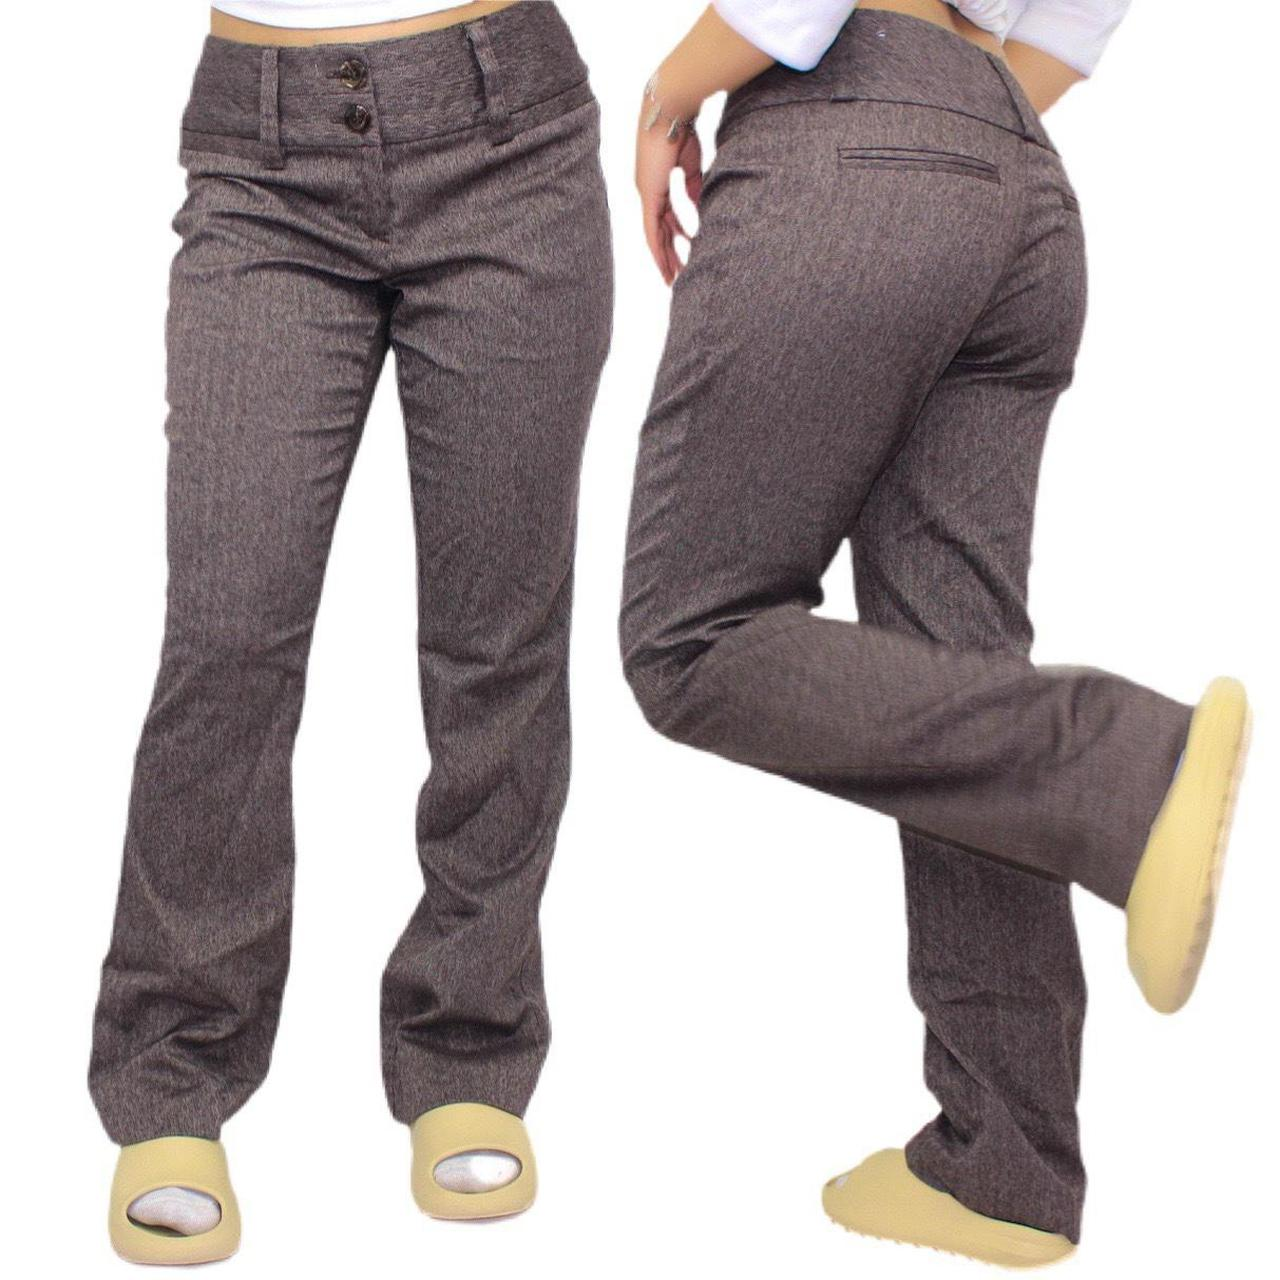 Product Image 1 - Y2K Brown Trousers. Cute, light